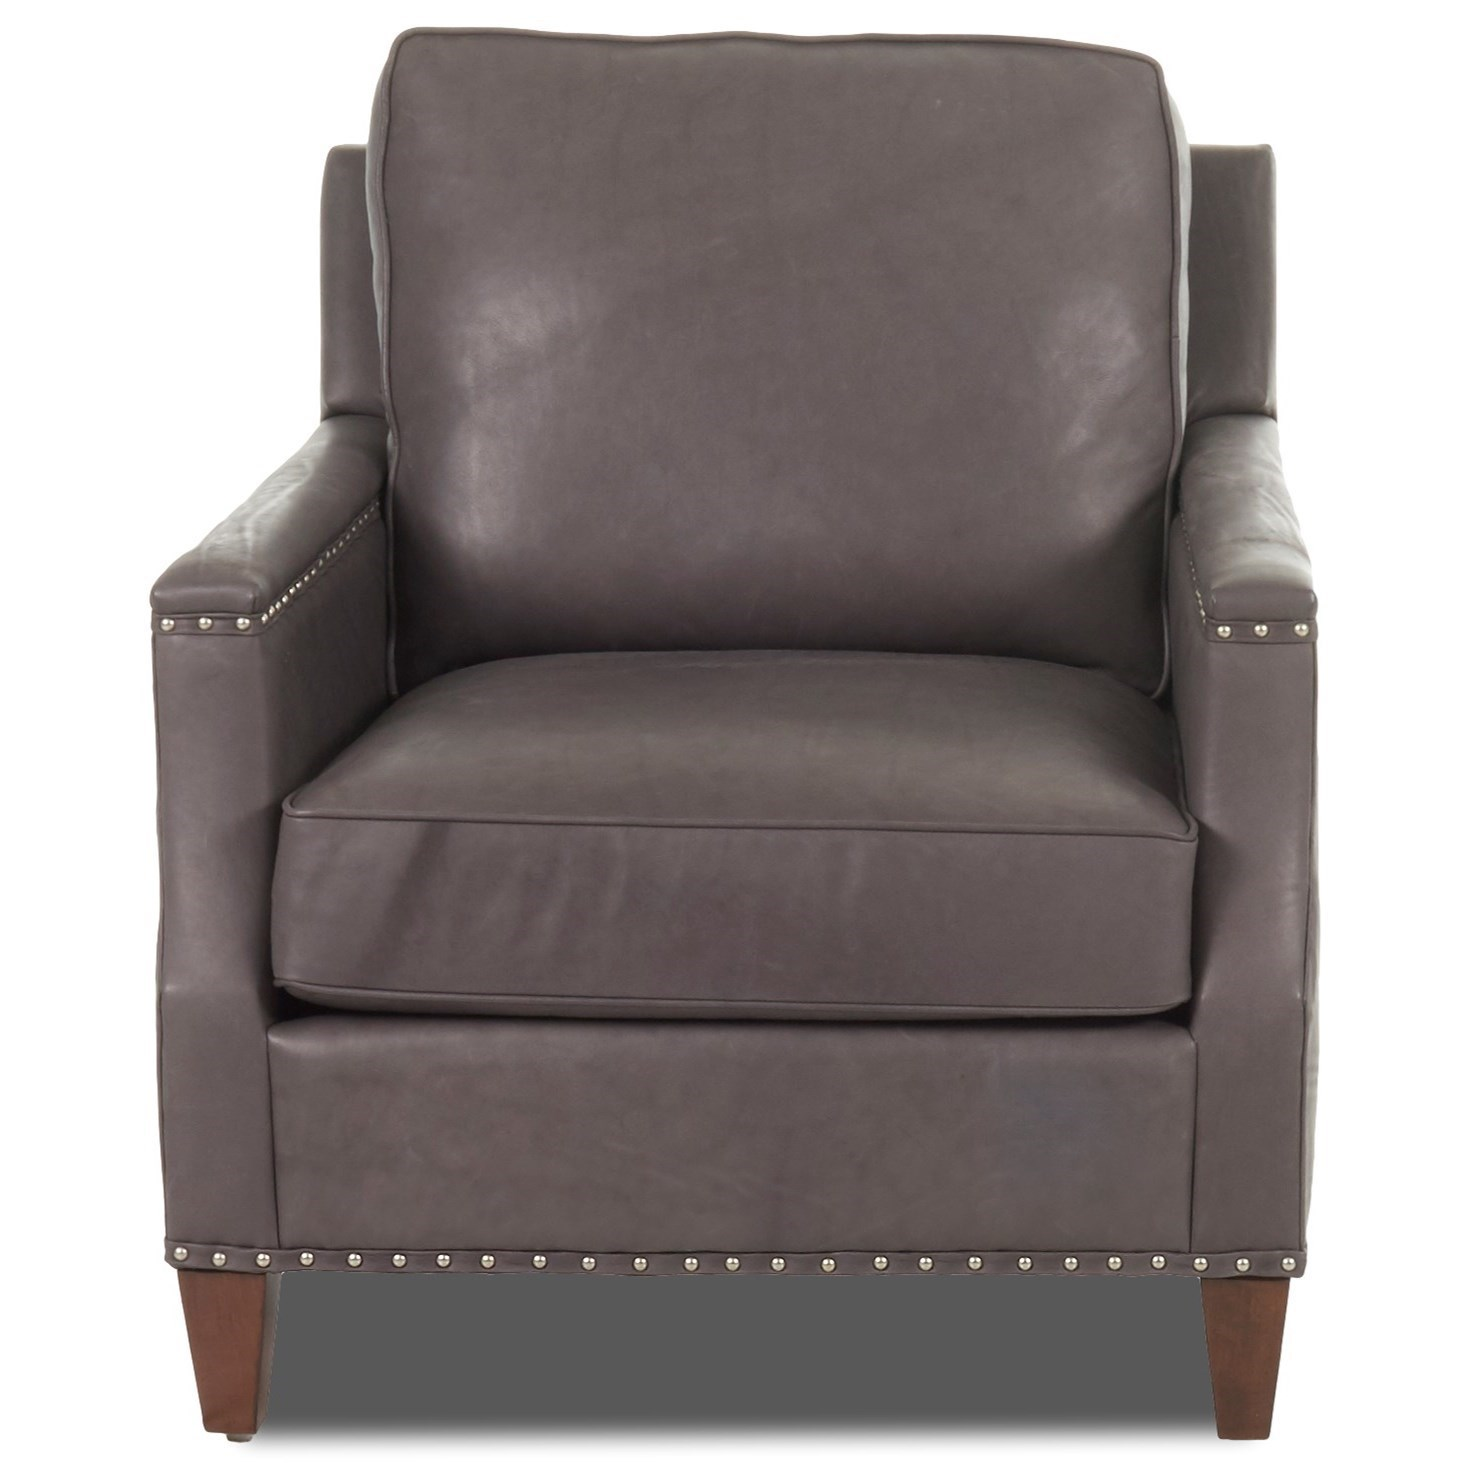 Klaussner Bond Transitional Chair With Nailhead Studs (No Trim) | Value  City Furniture | Upholstered Chairs